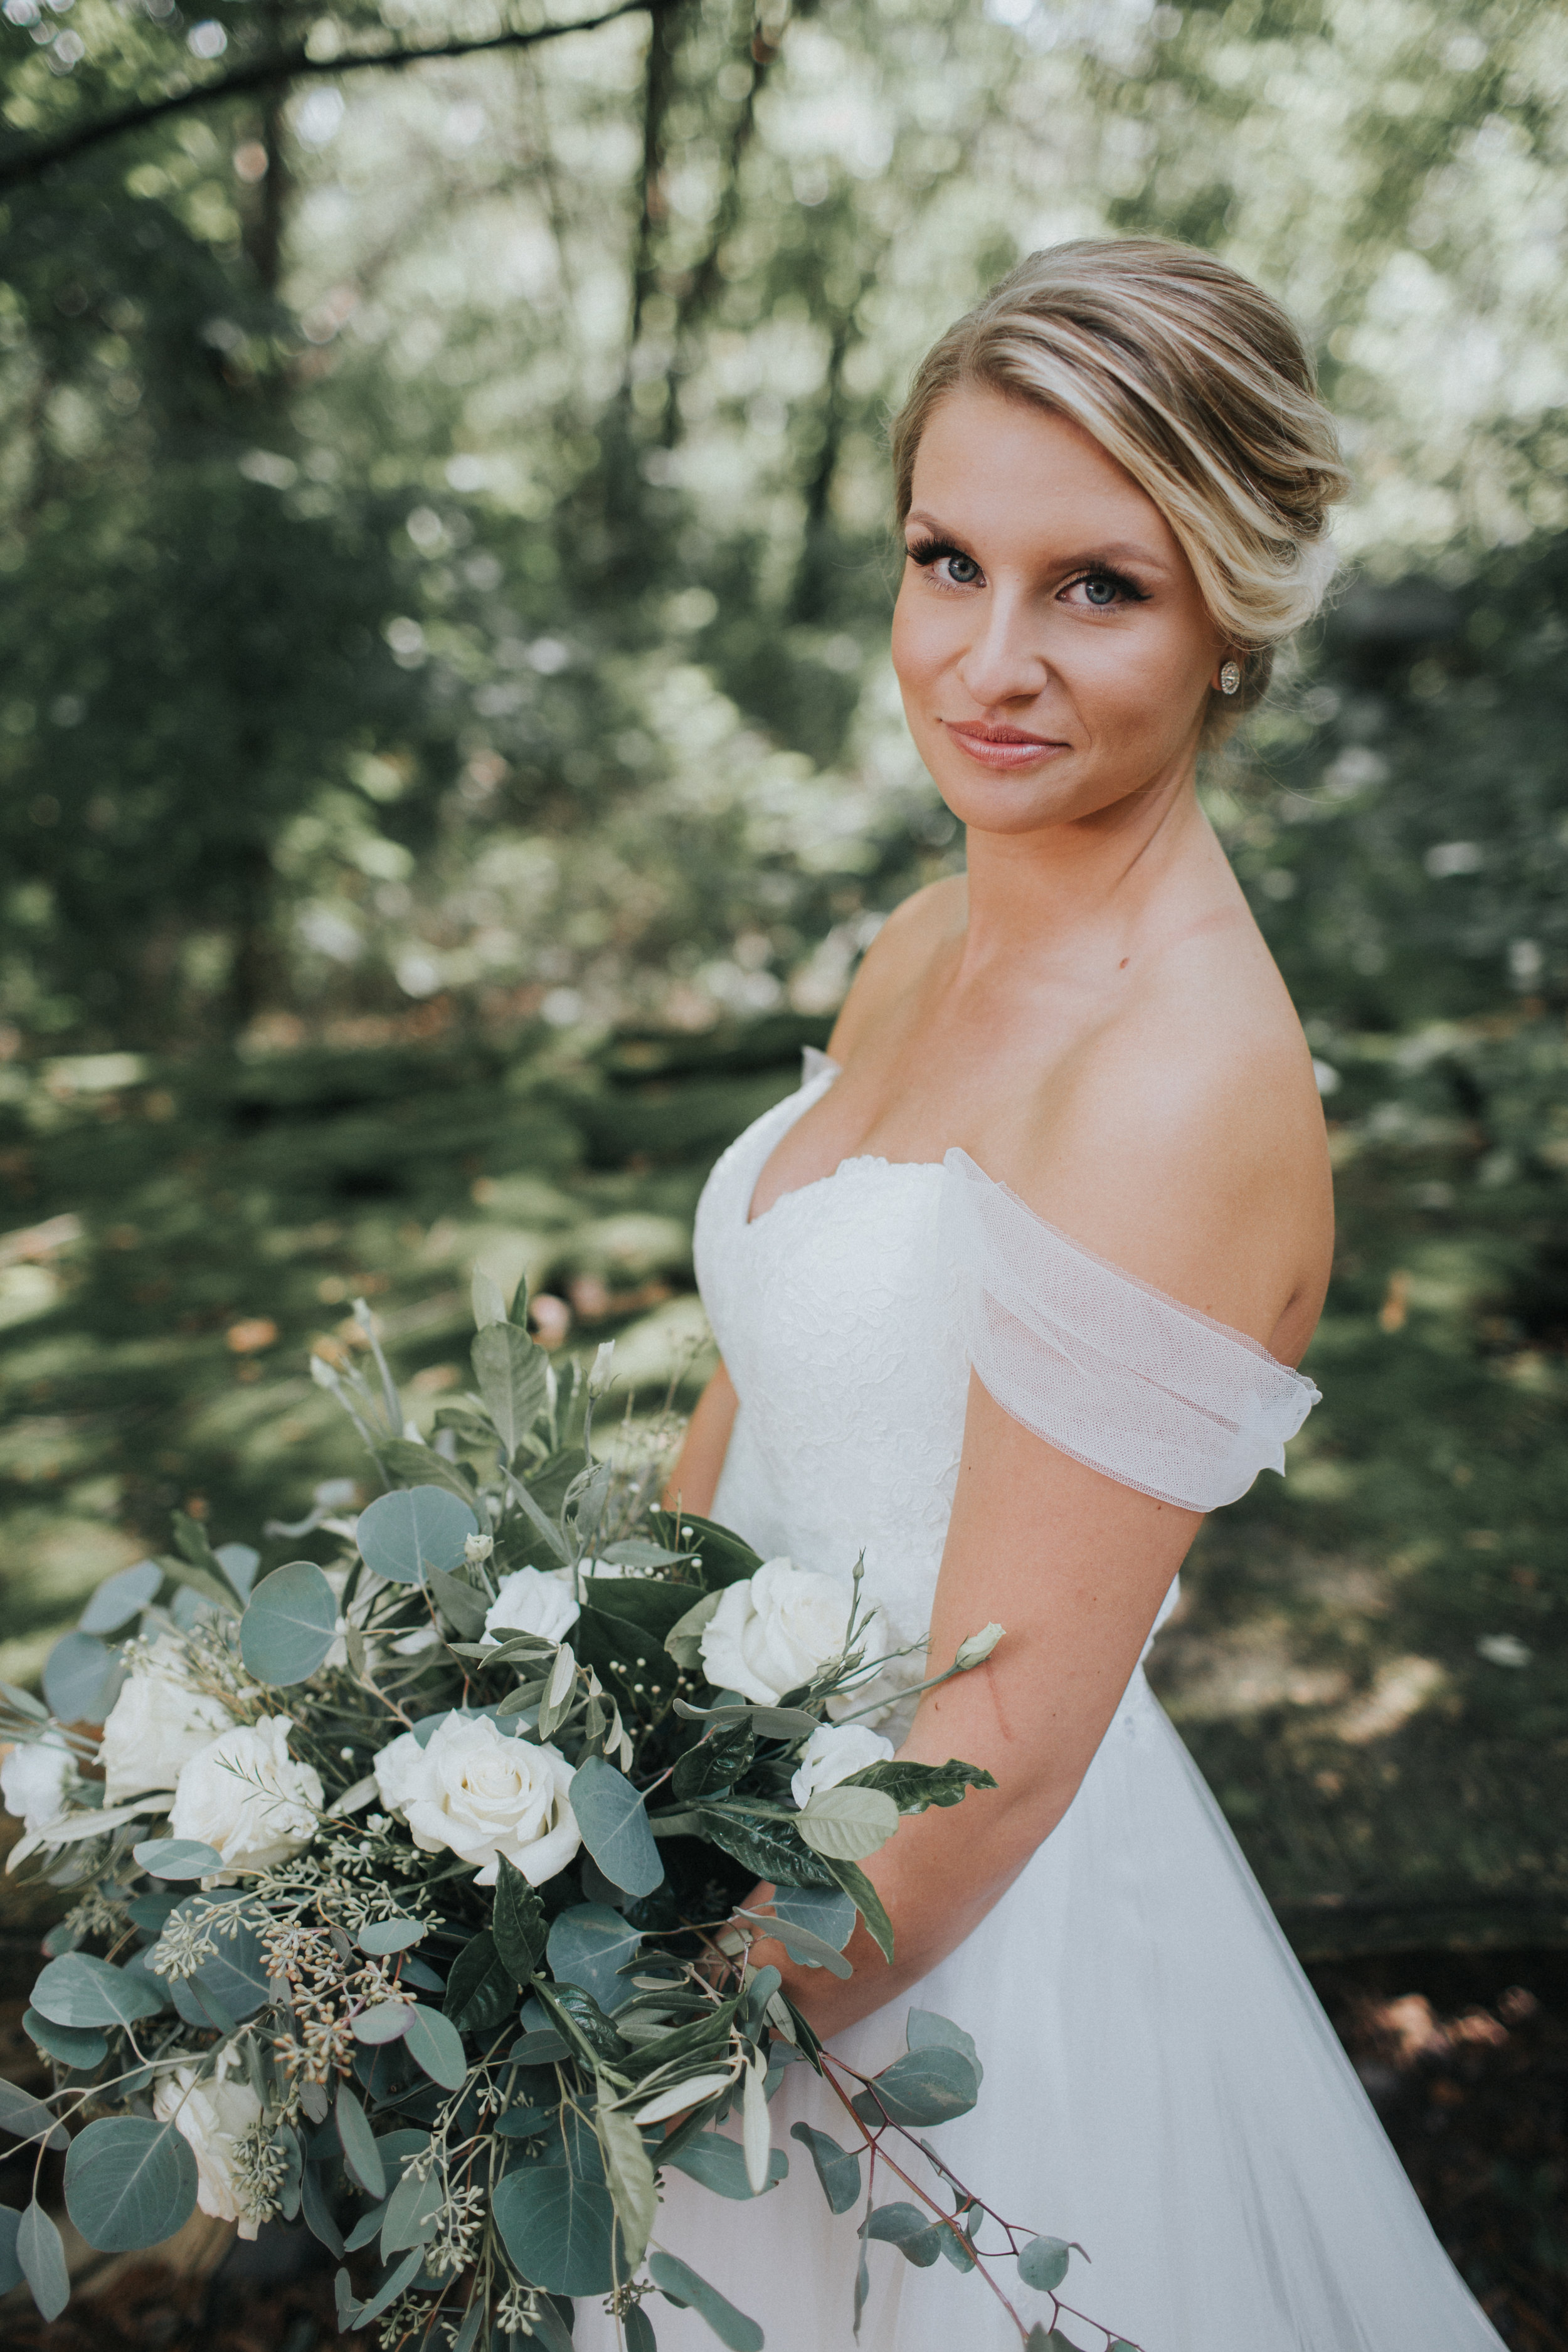 {Photo by: White Harvest Photography}